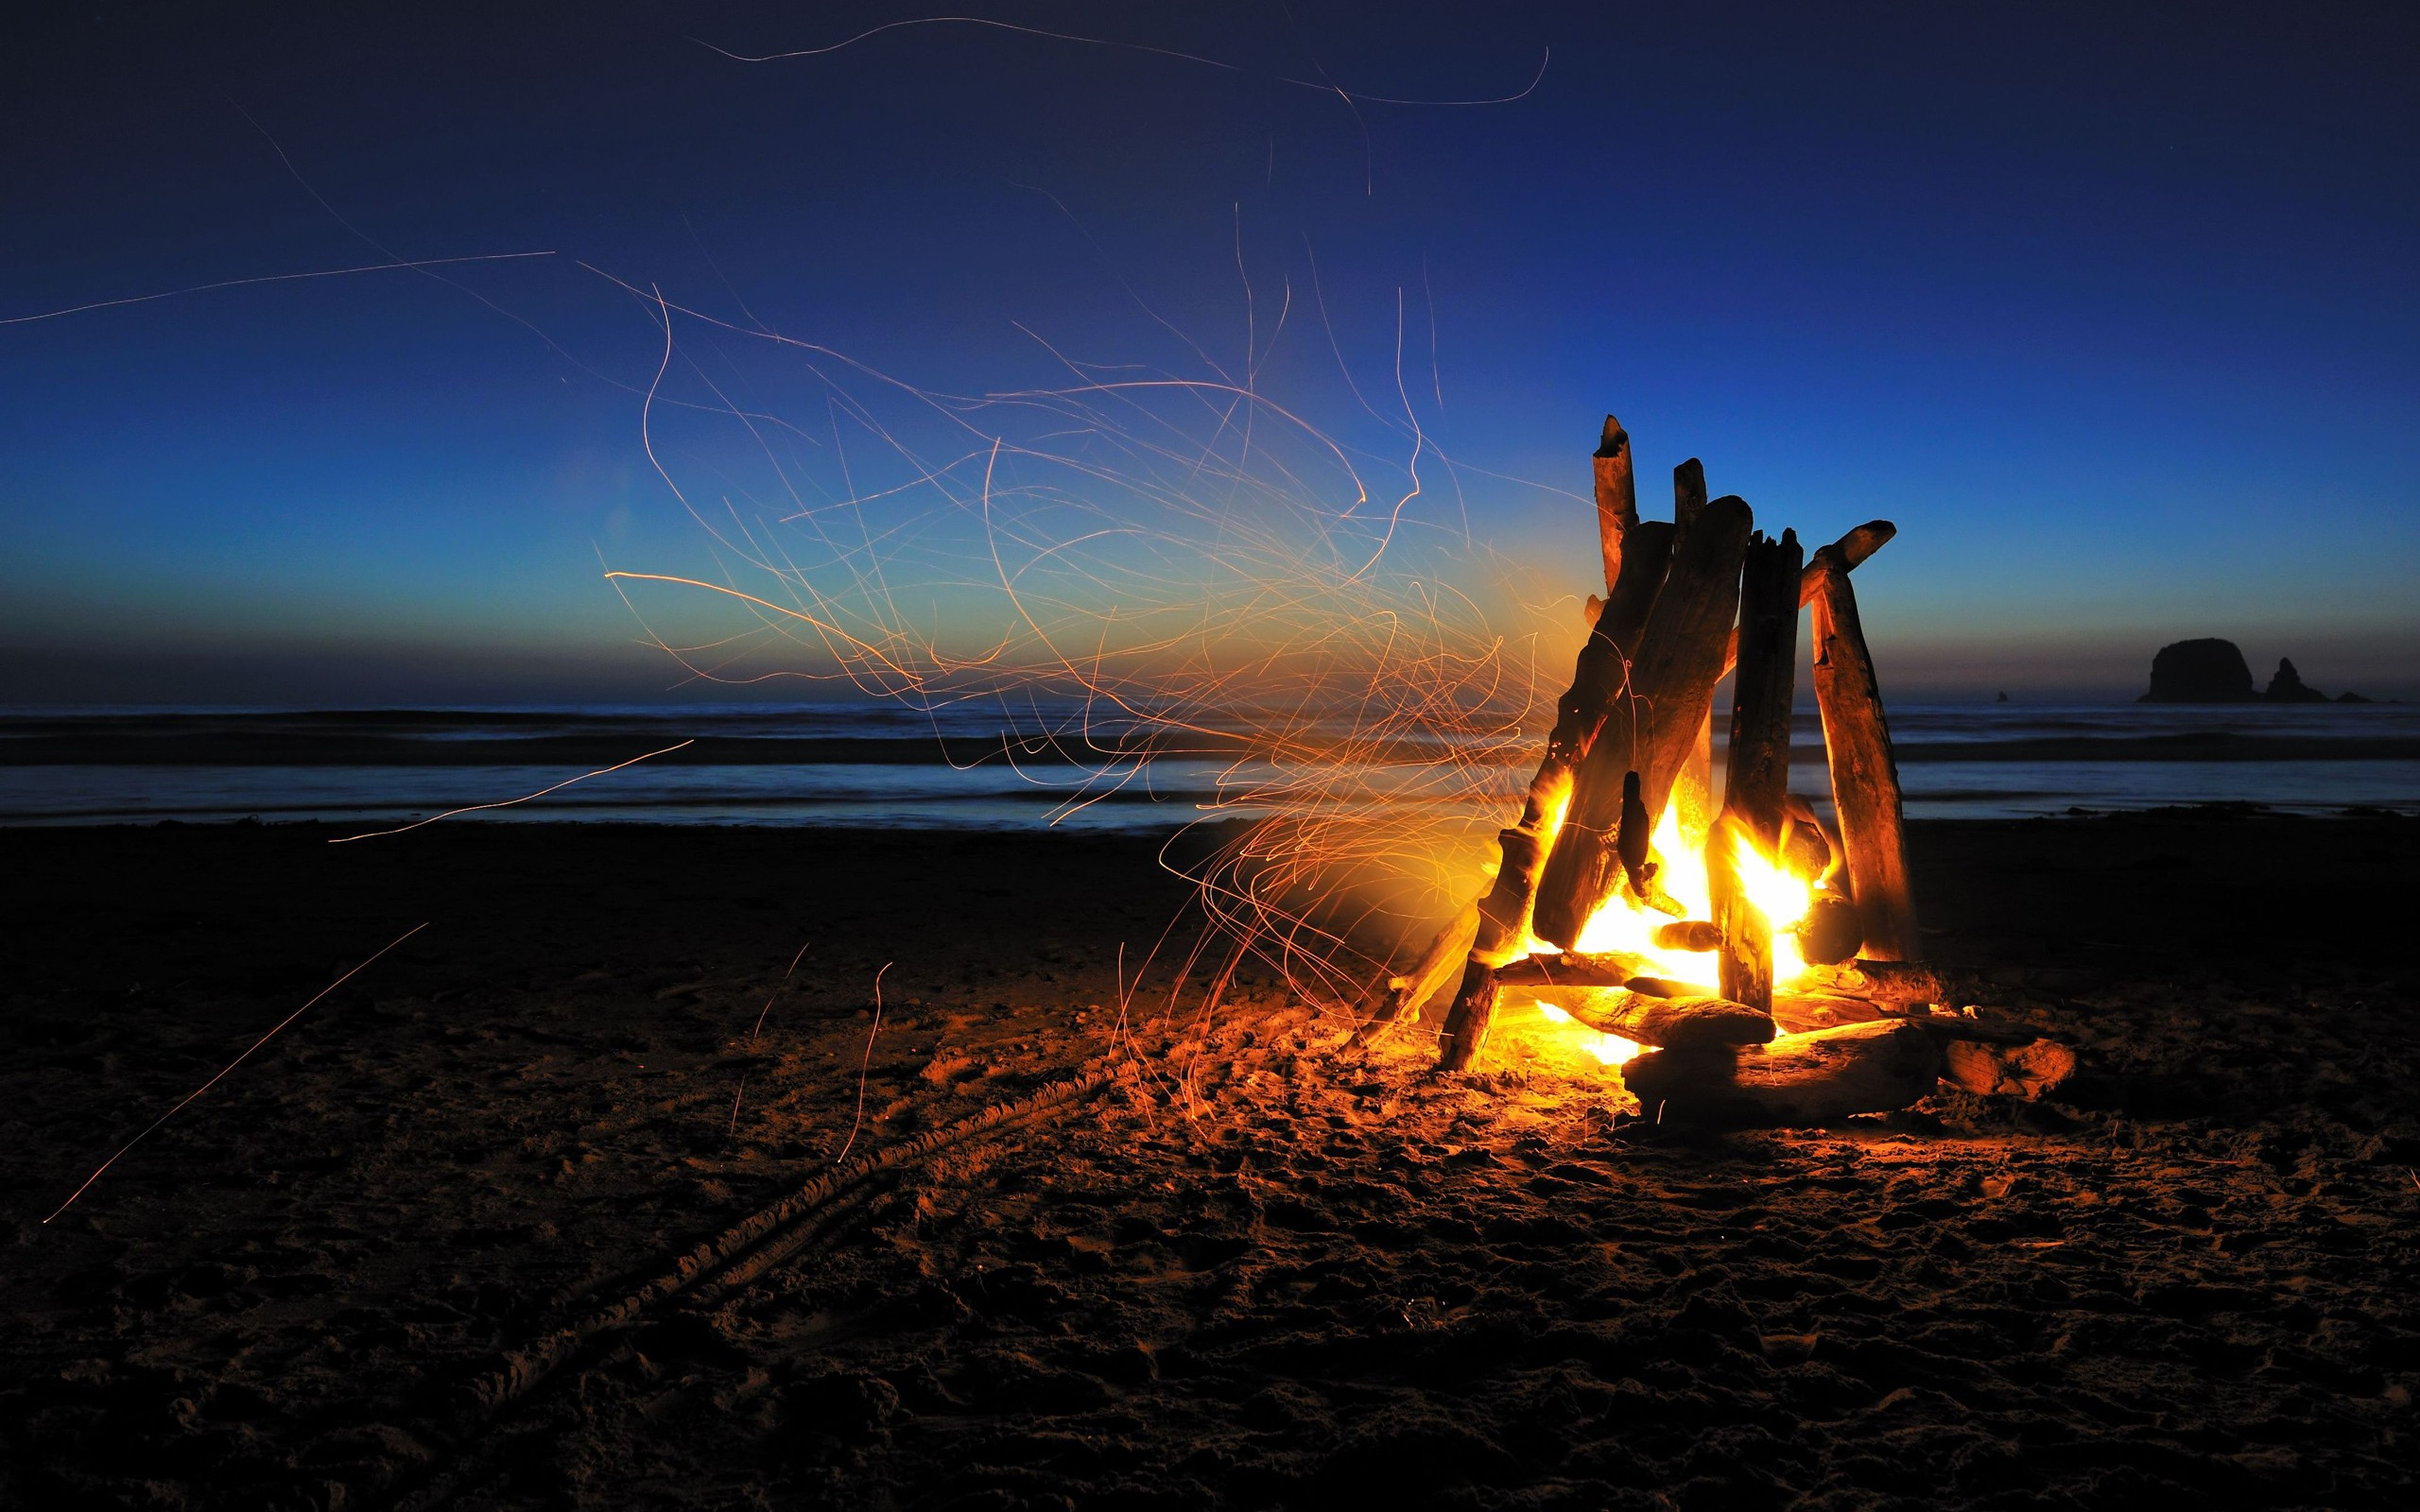 Fire Beach Night Timelapse Sparks Camp Camping wallpaper background 2560x1600